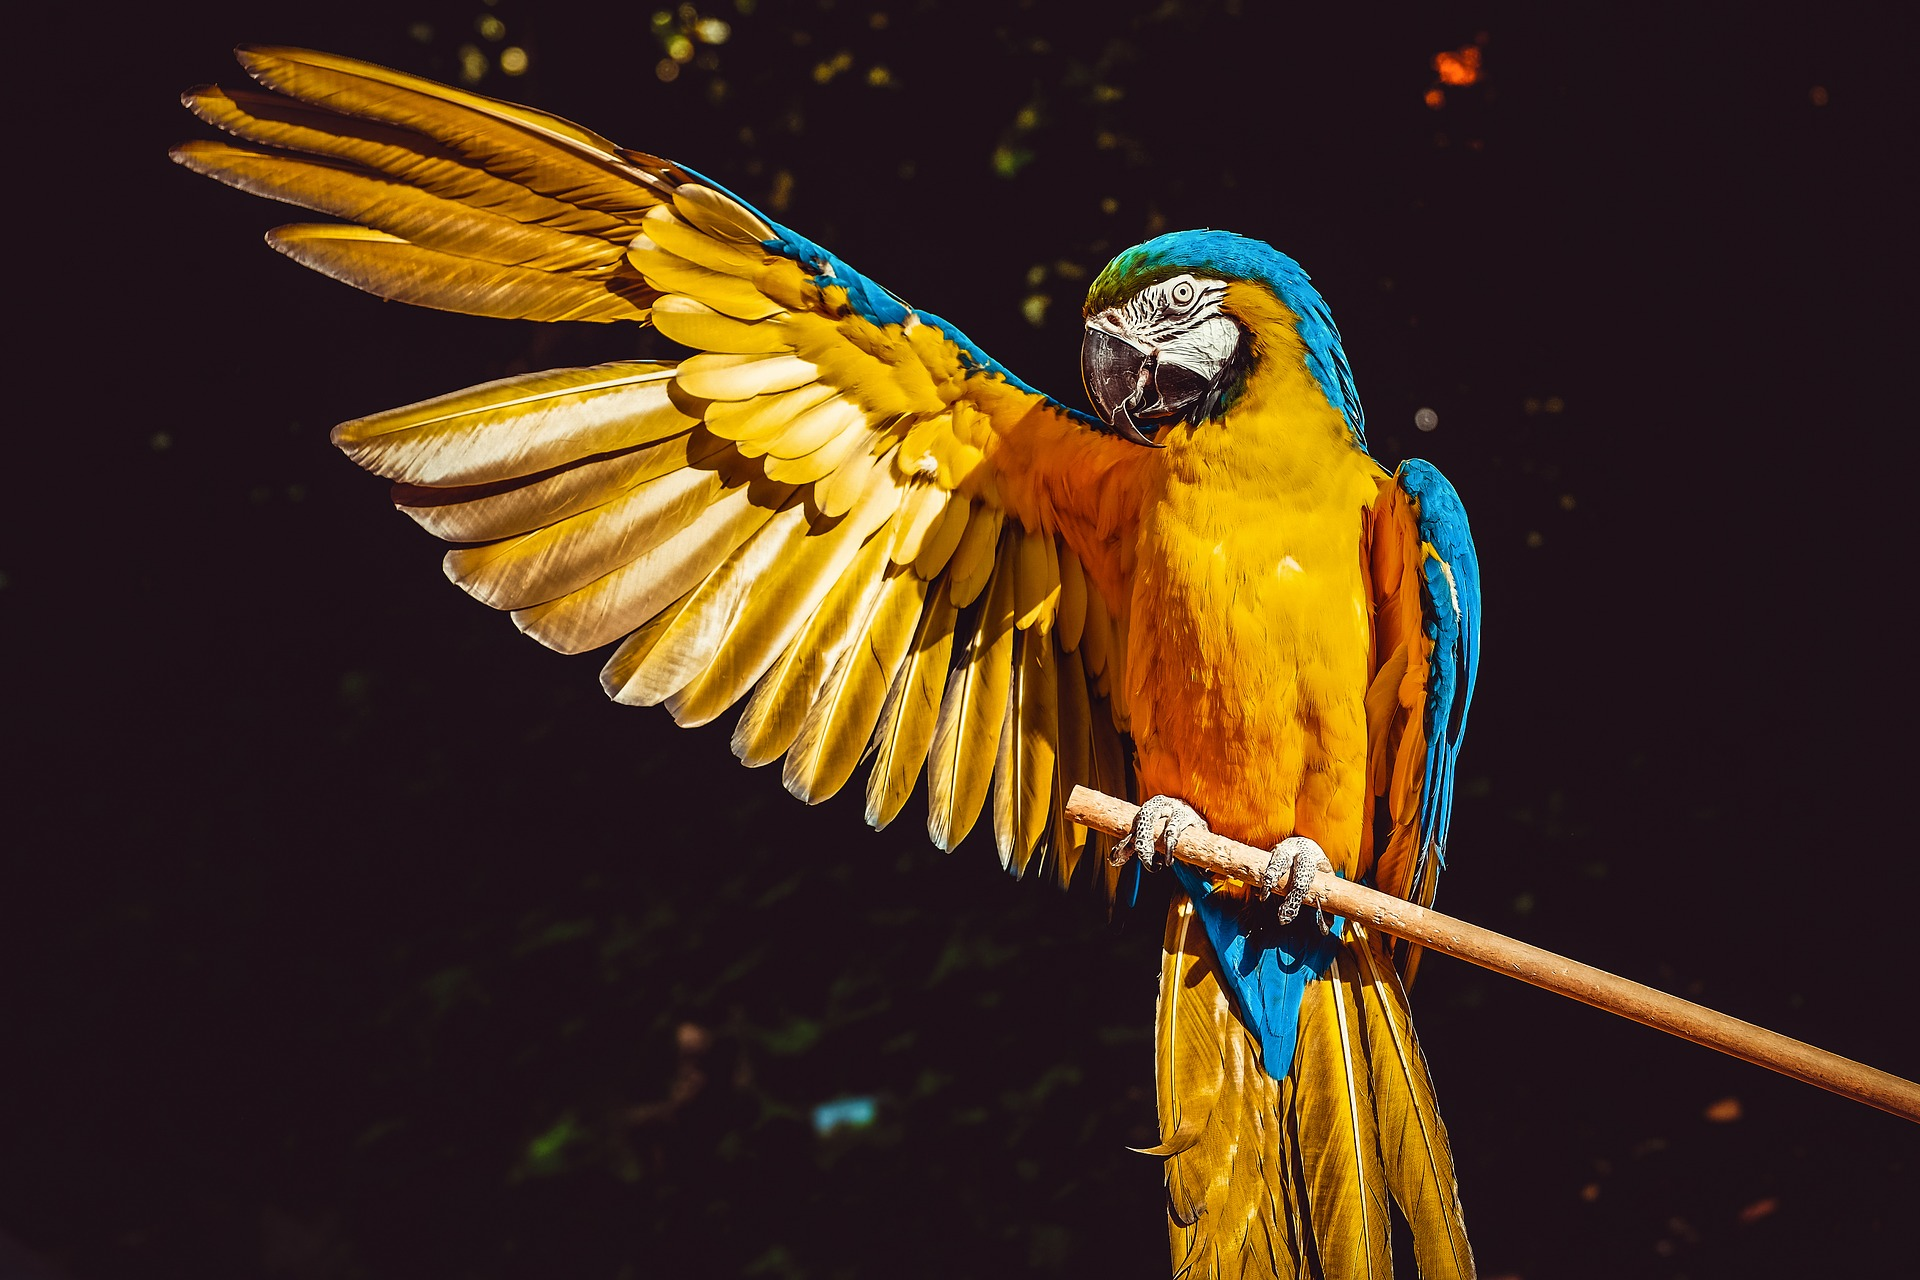 The 10 Best Zoos In The US: The Animal Kingdom Awaits